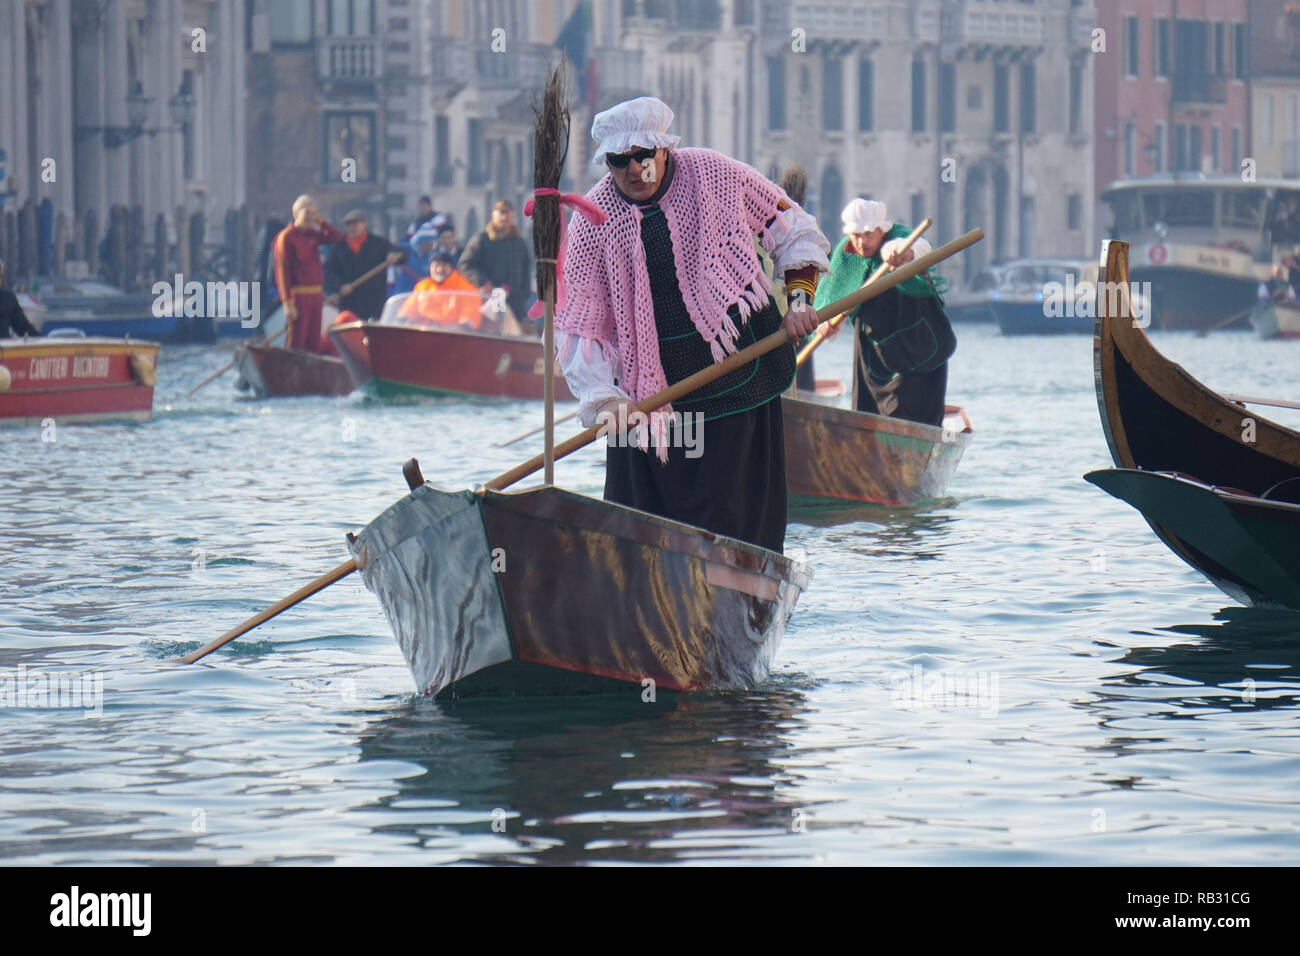 Venice, Italy. 6th January, 2019. The Venetian rower Francesco Guerra, nickname 'Malaga', marked by the pink shawl, while rowing in the first position, during the traditional rowing boat race, on the Grand Canal, between rowers dressed as Befane, on 6 January 2019. in Venice, Italy. © Andrea Merola / Awakening / Alamy Live News - Stock Image